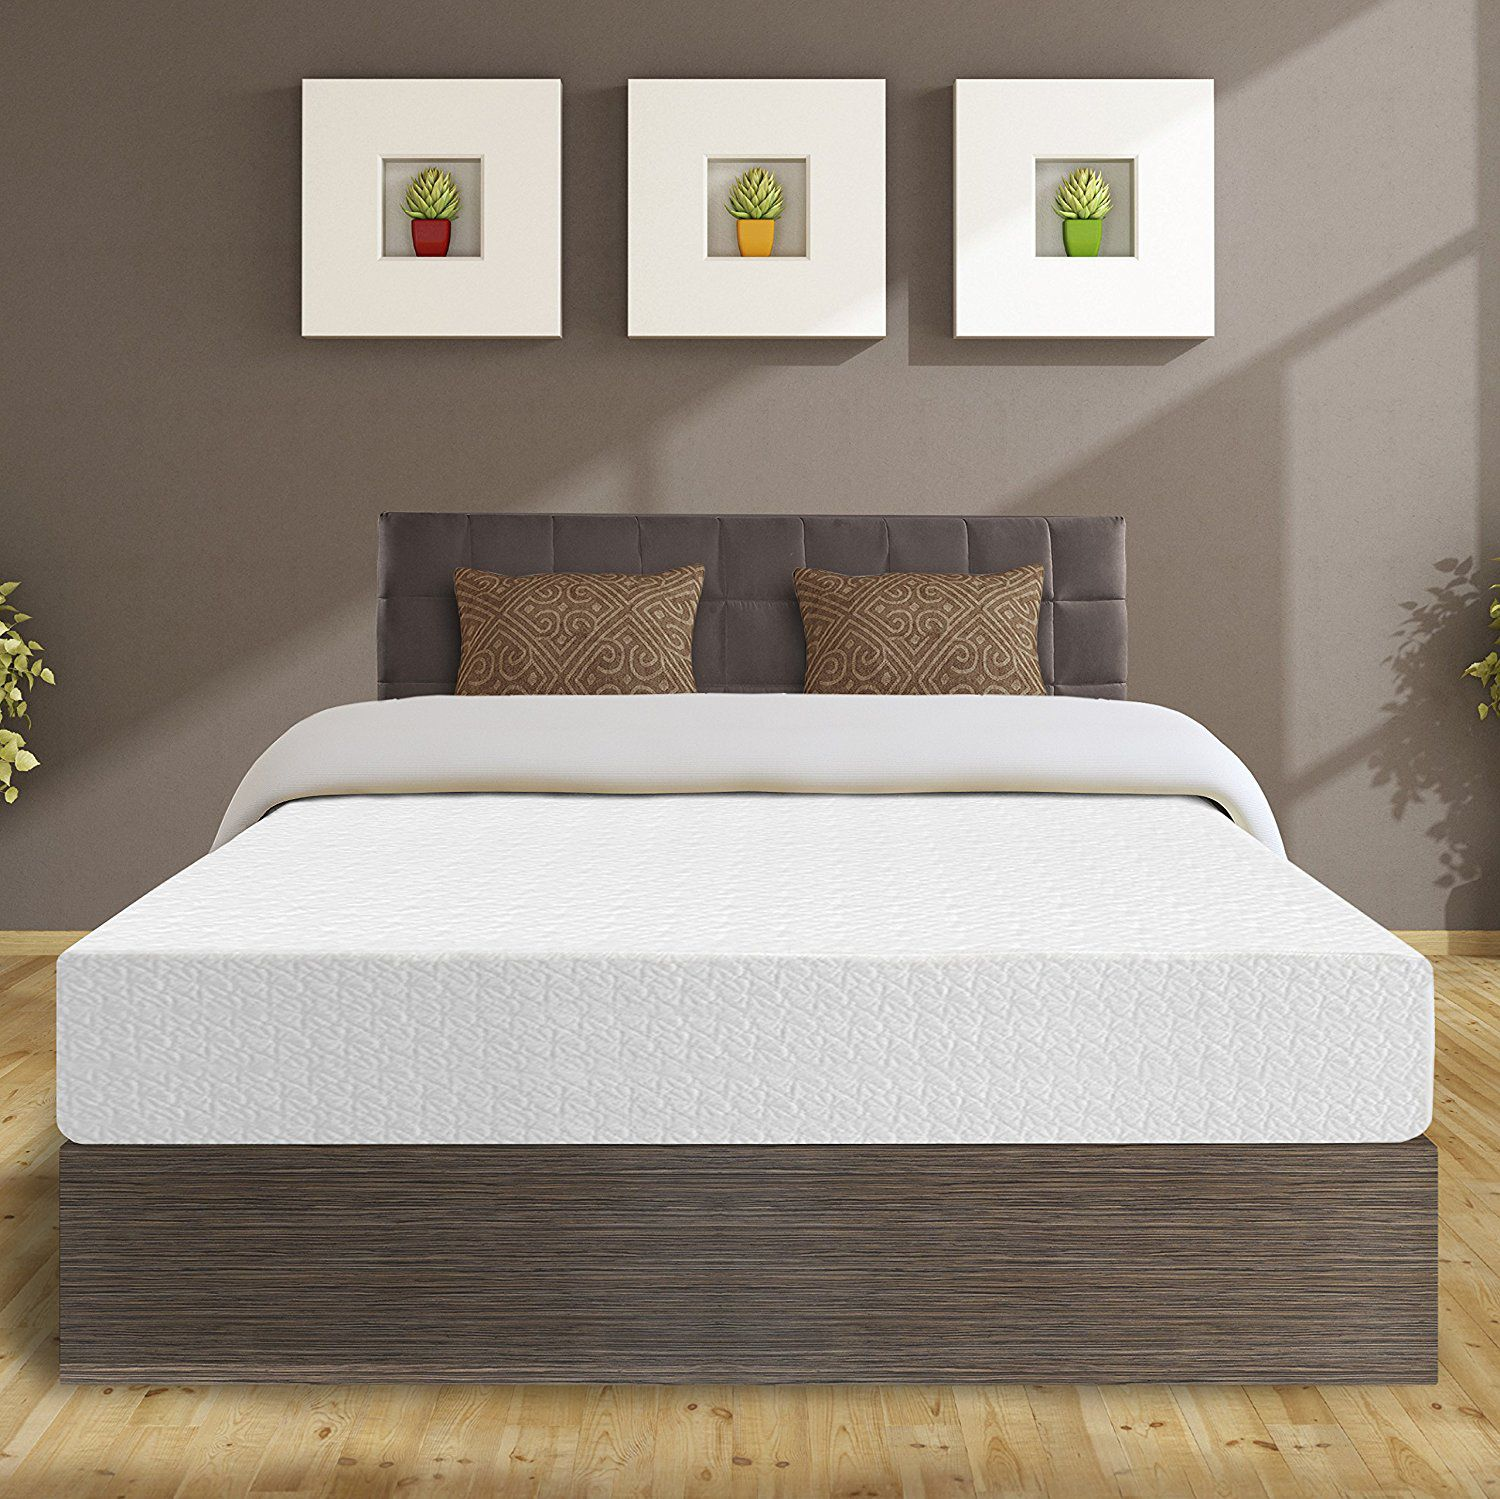 The 6 Best Memory Foam Mattresses to Buy in 2018